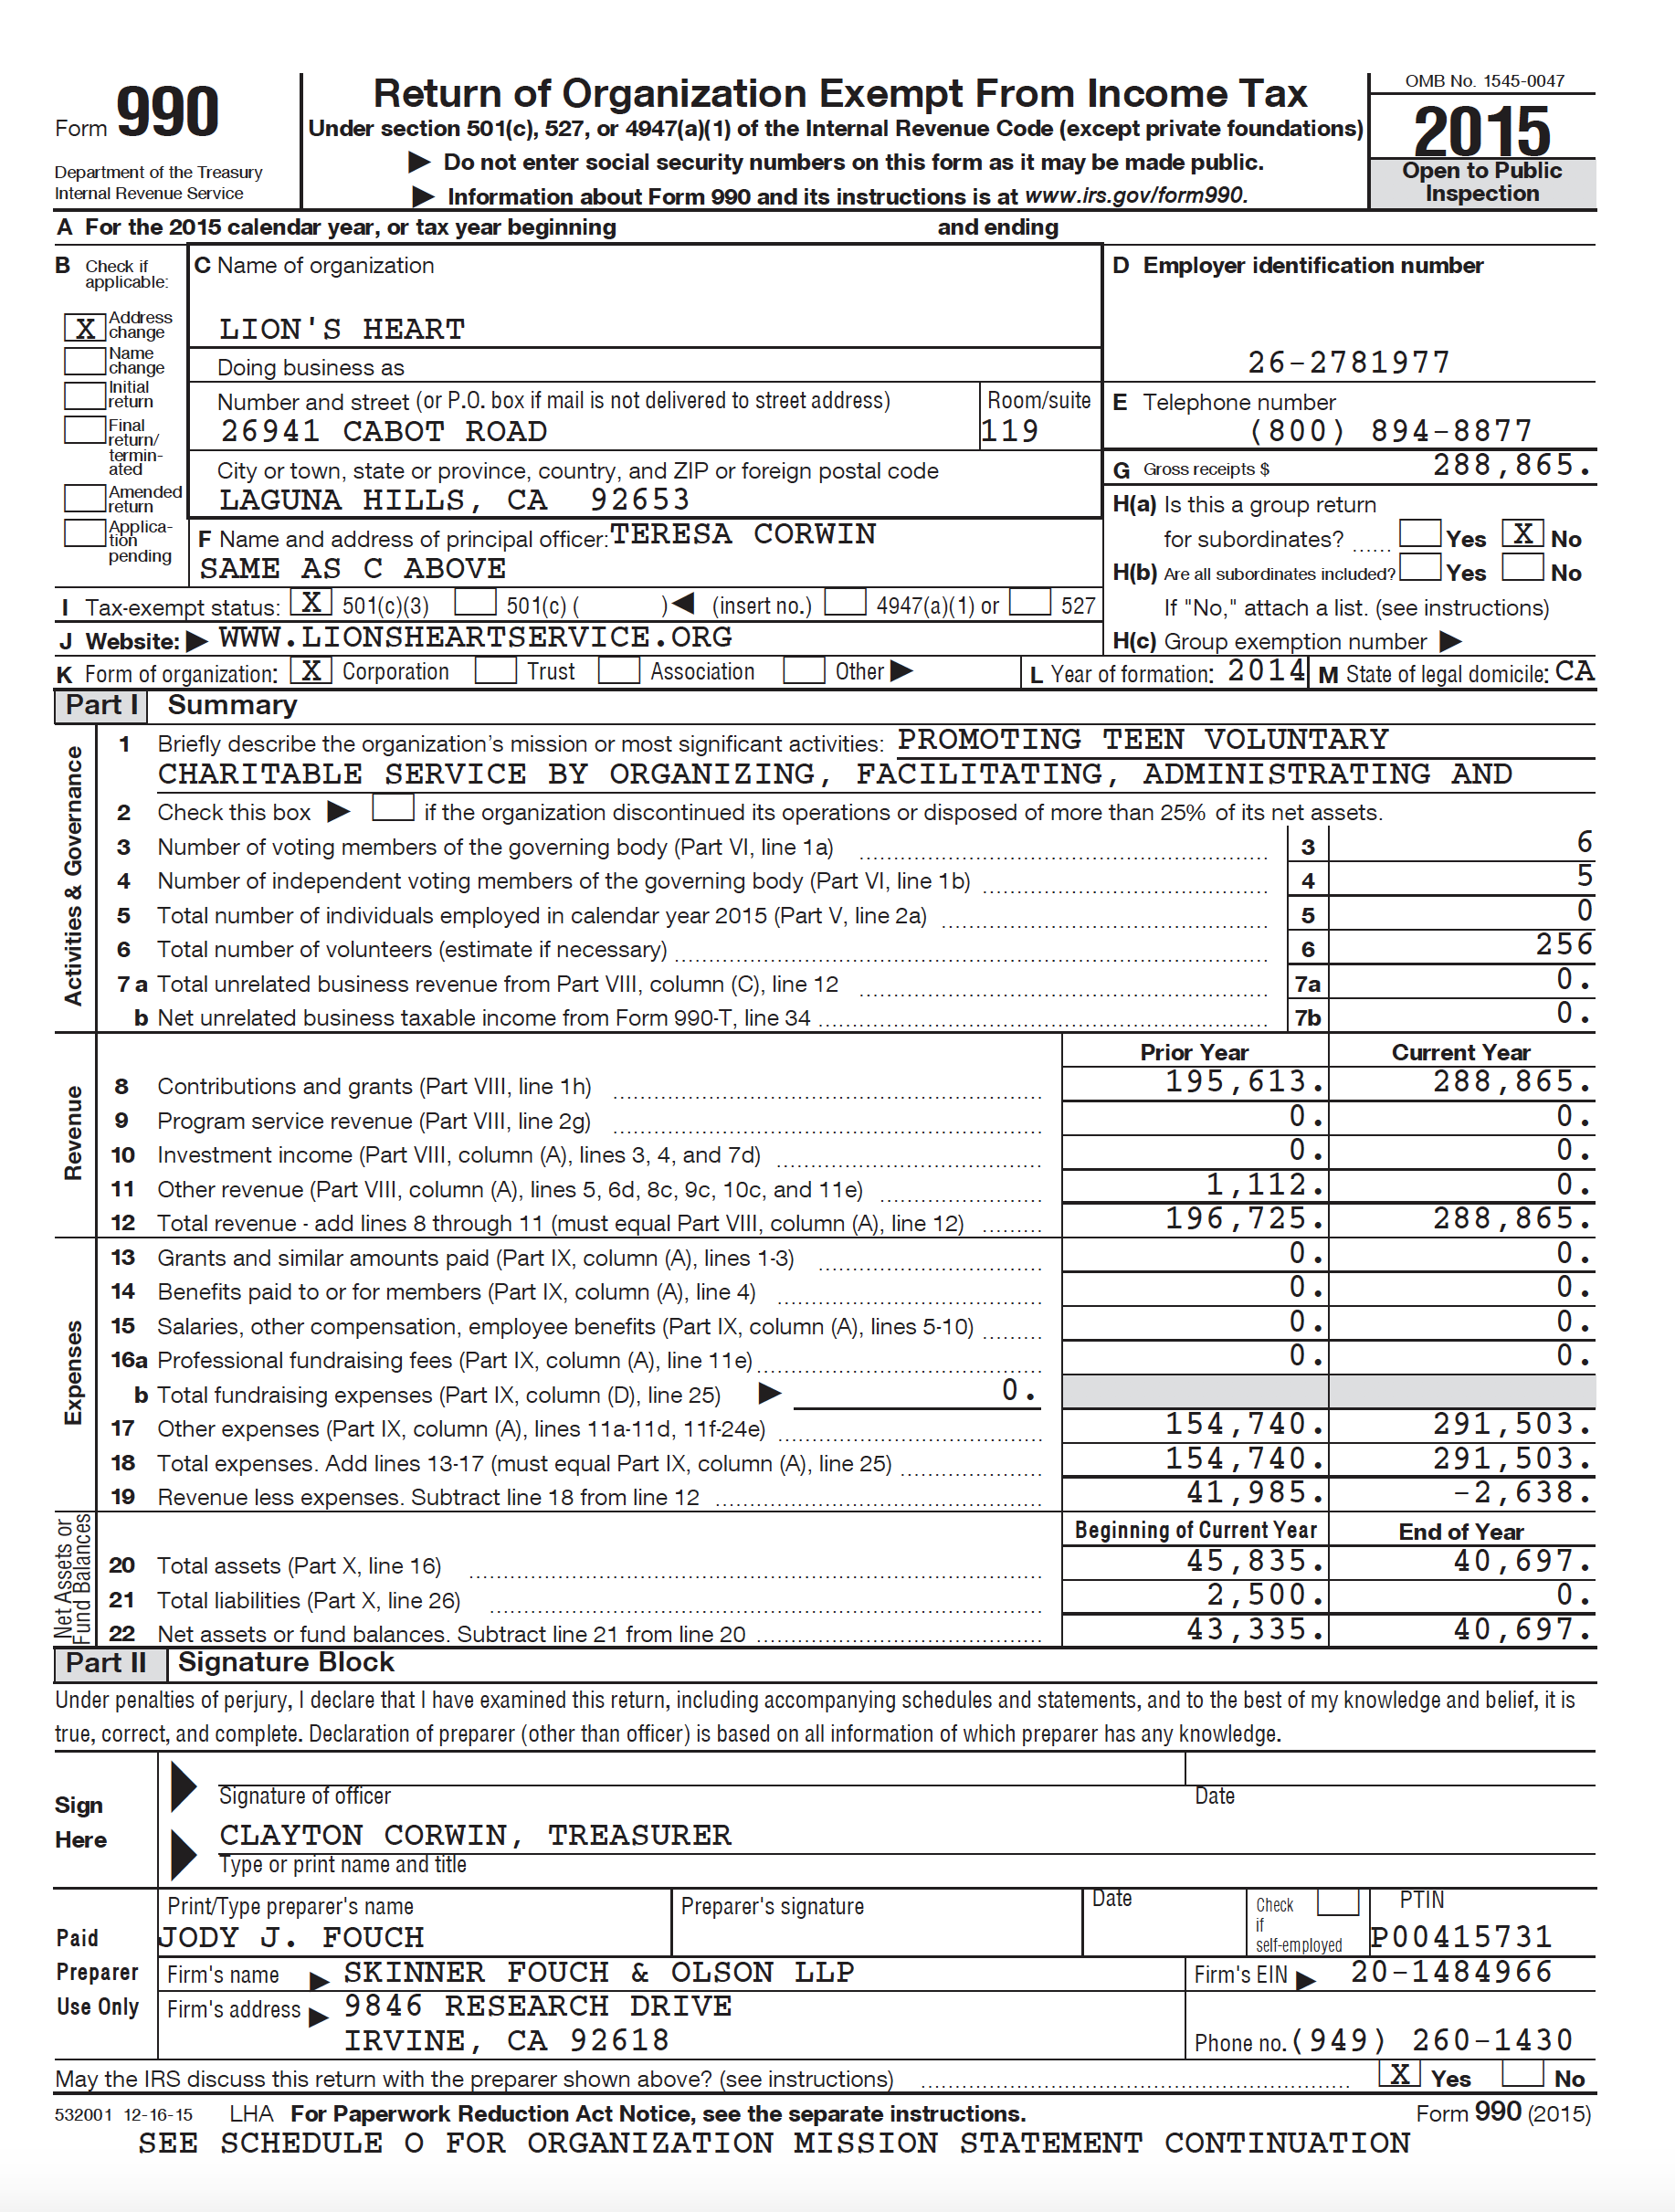 990 IRS form for 2015